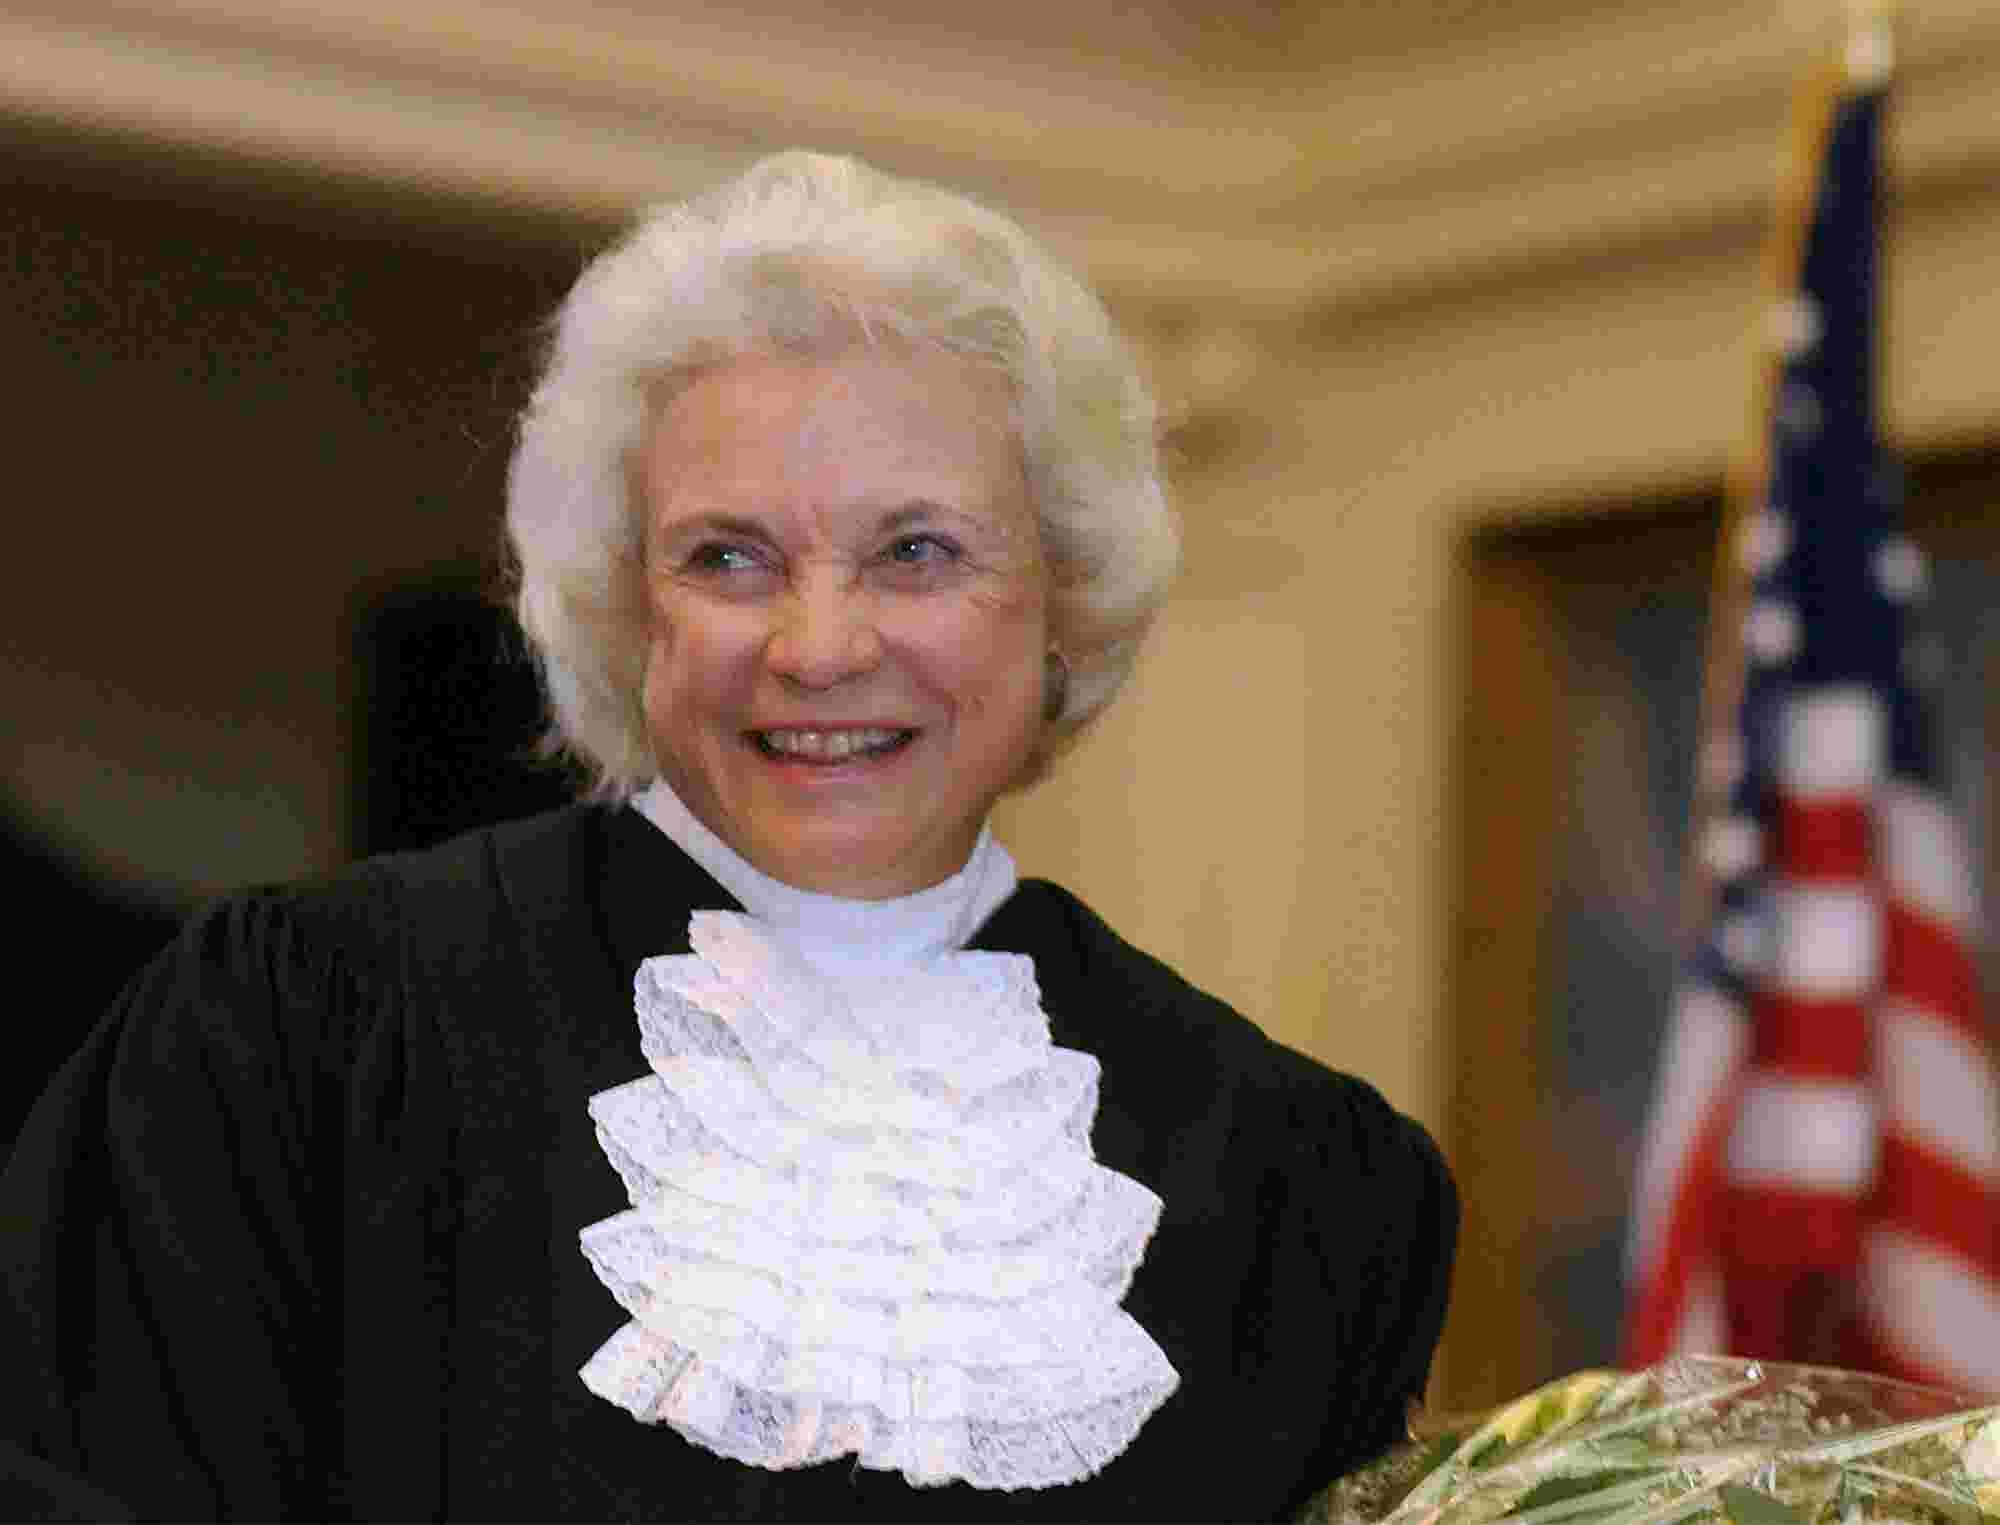 As the Supreme Court shifted right, conservative Sandra Day O'Connor shifted to the middle